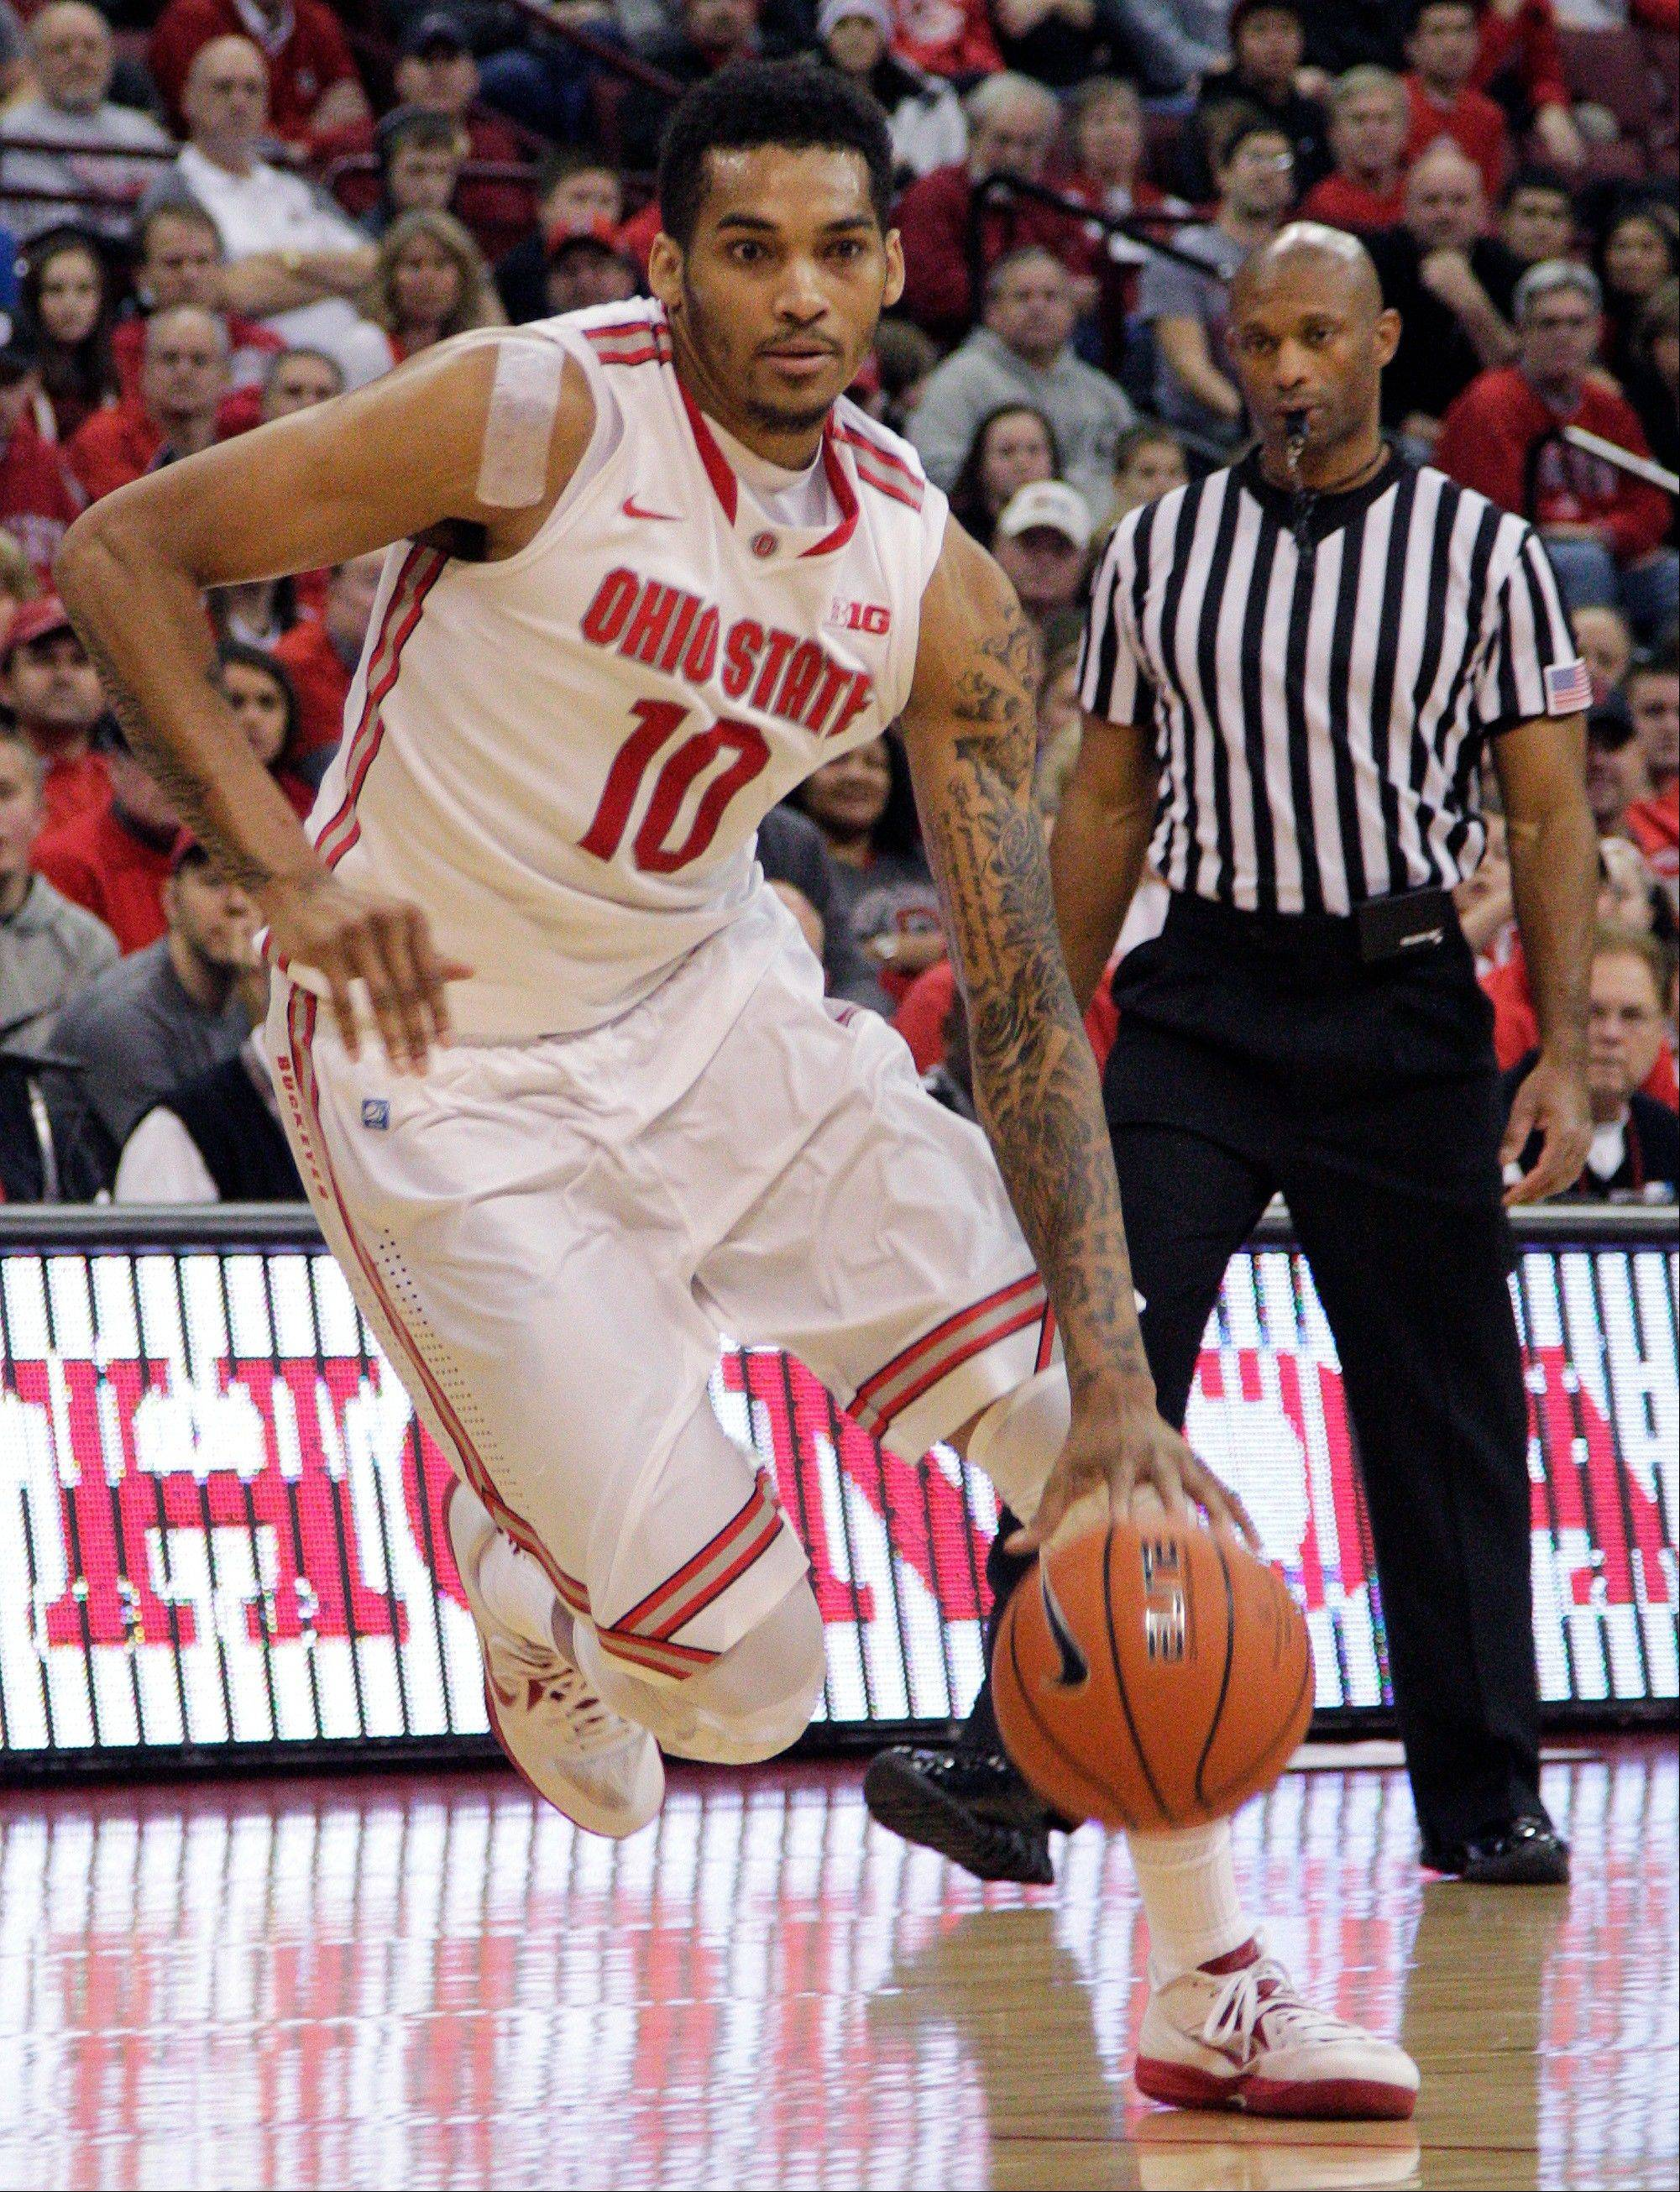 Ohio State�s LaQuinton Ross drives the lane against North Florida during the second half of Friday�s game in Columbus, Ohio.